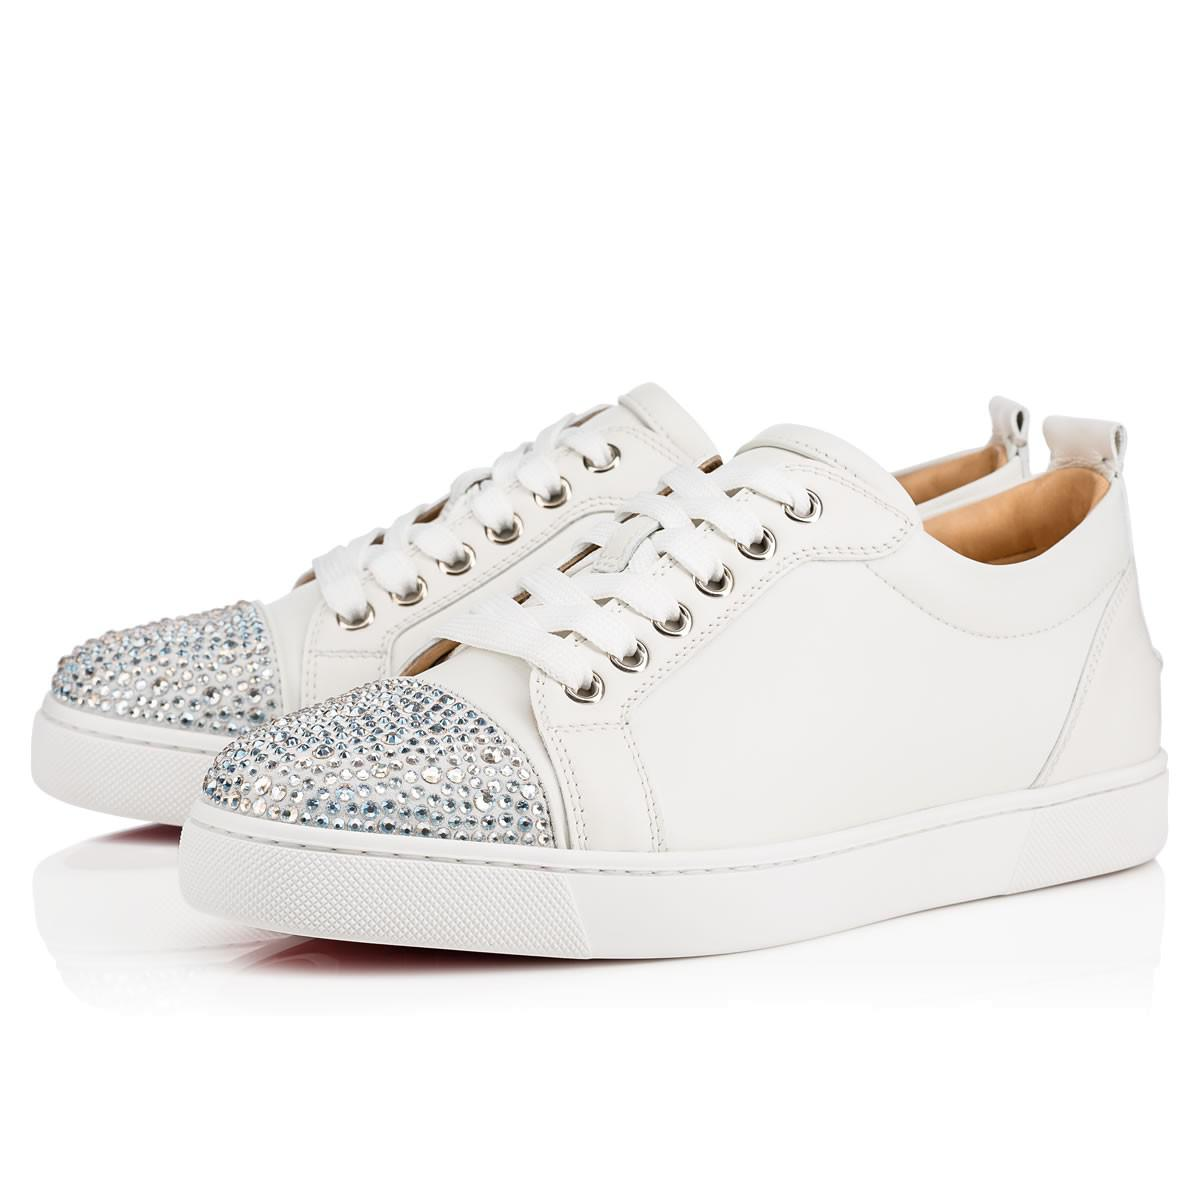 3c08b5ff477 ... sneaker dfdda f3a52  coupon code for lyst christian louboutin junior  strass woman flat in white 4f445 45ae1